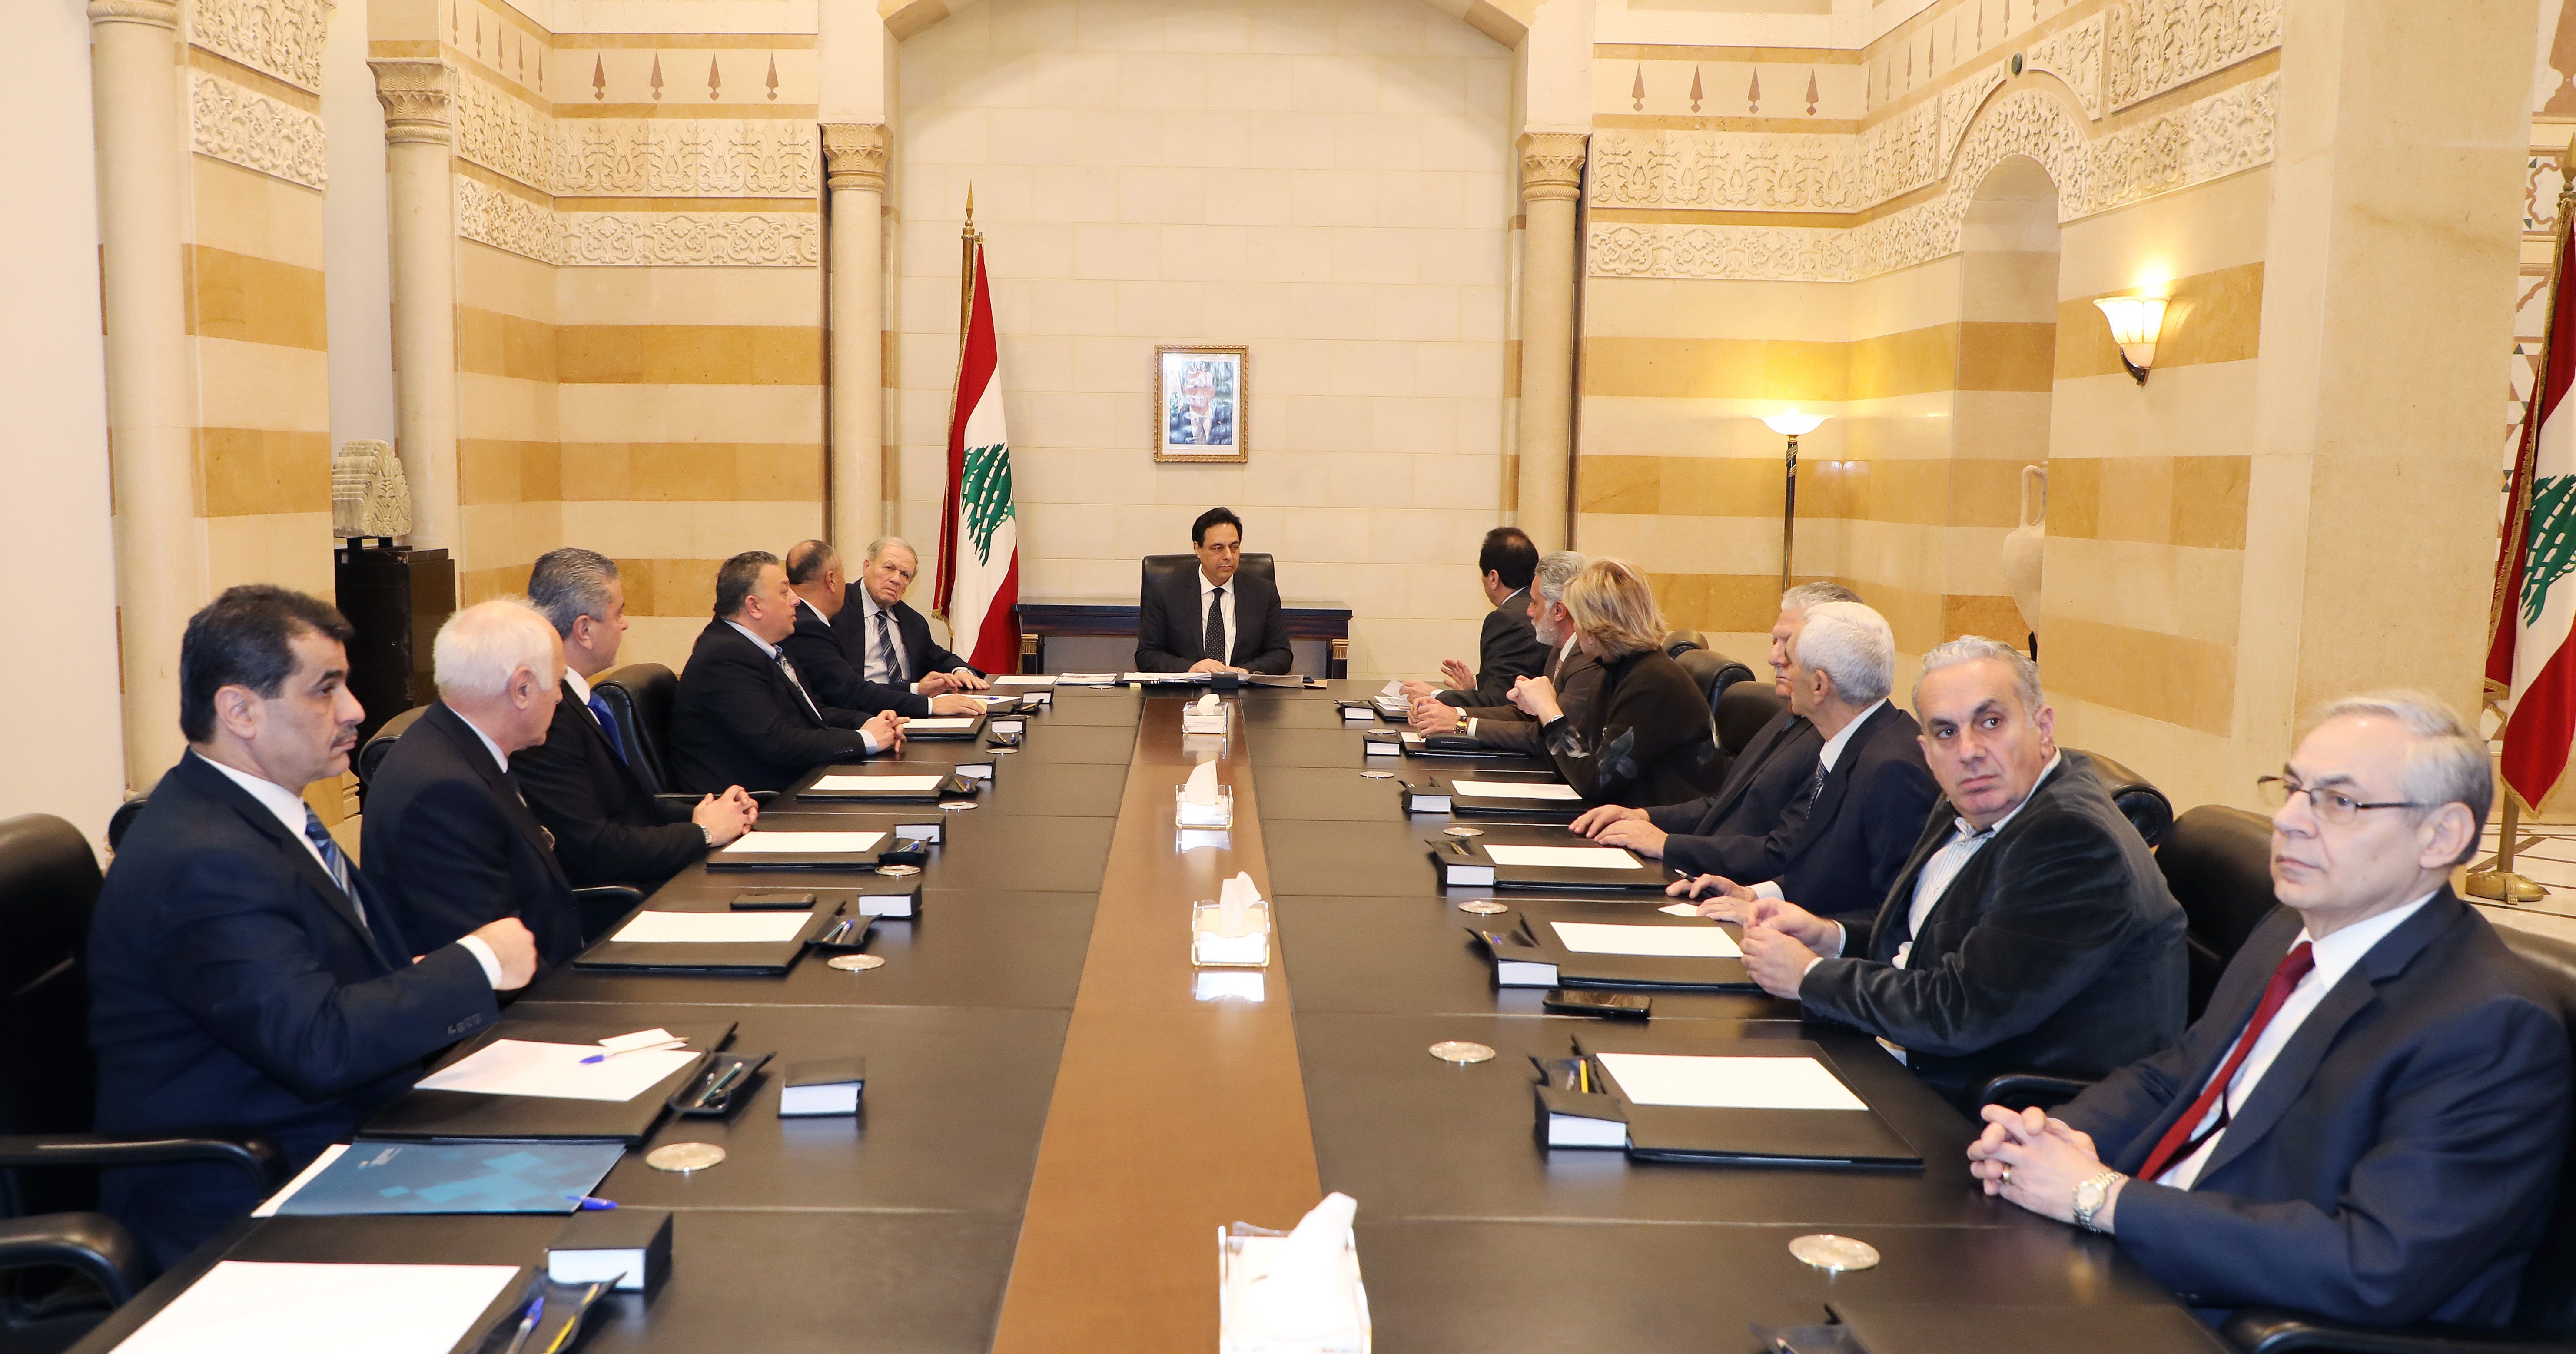 Pr Minister Hassan Diab meets a Delegation from Gaz Station Syndicate 1